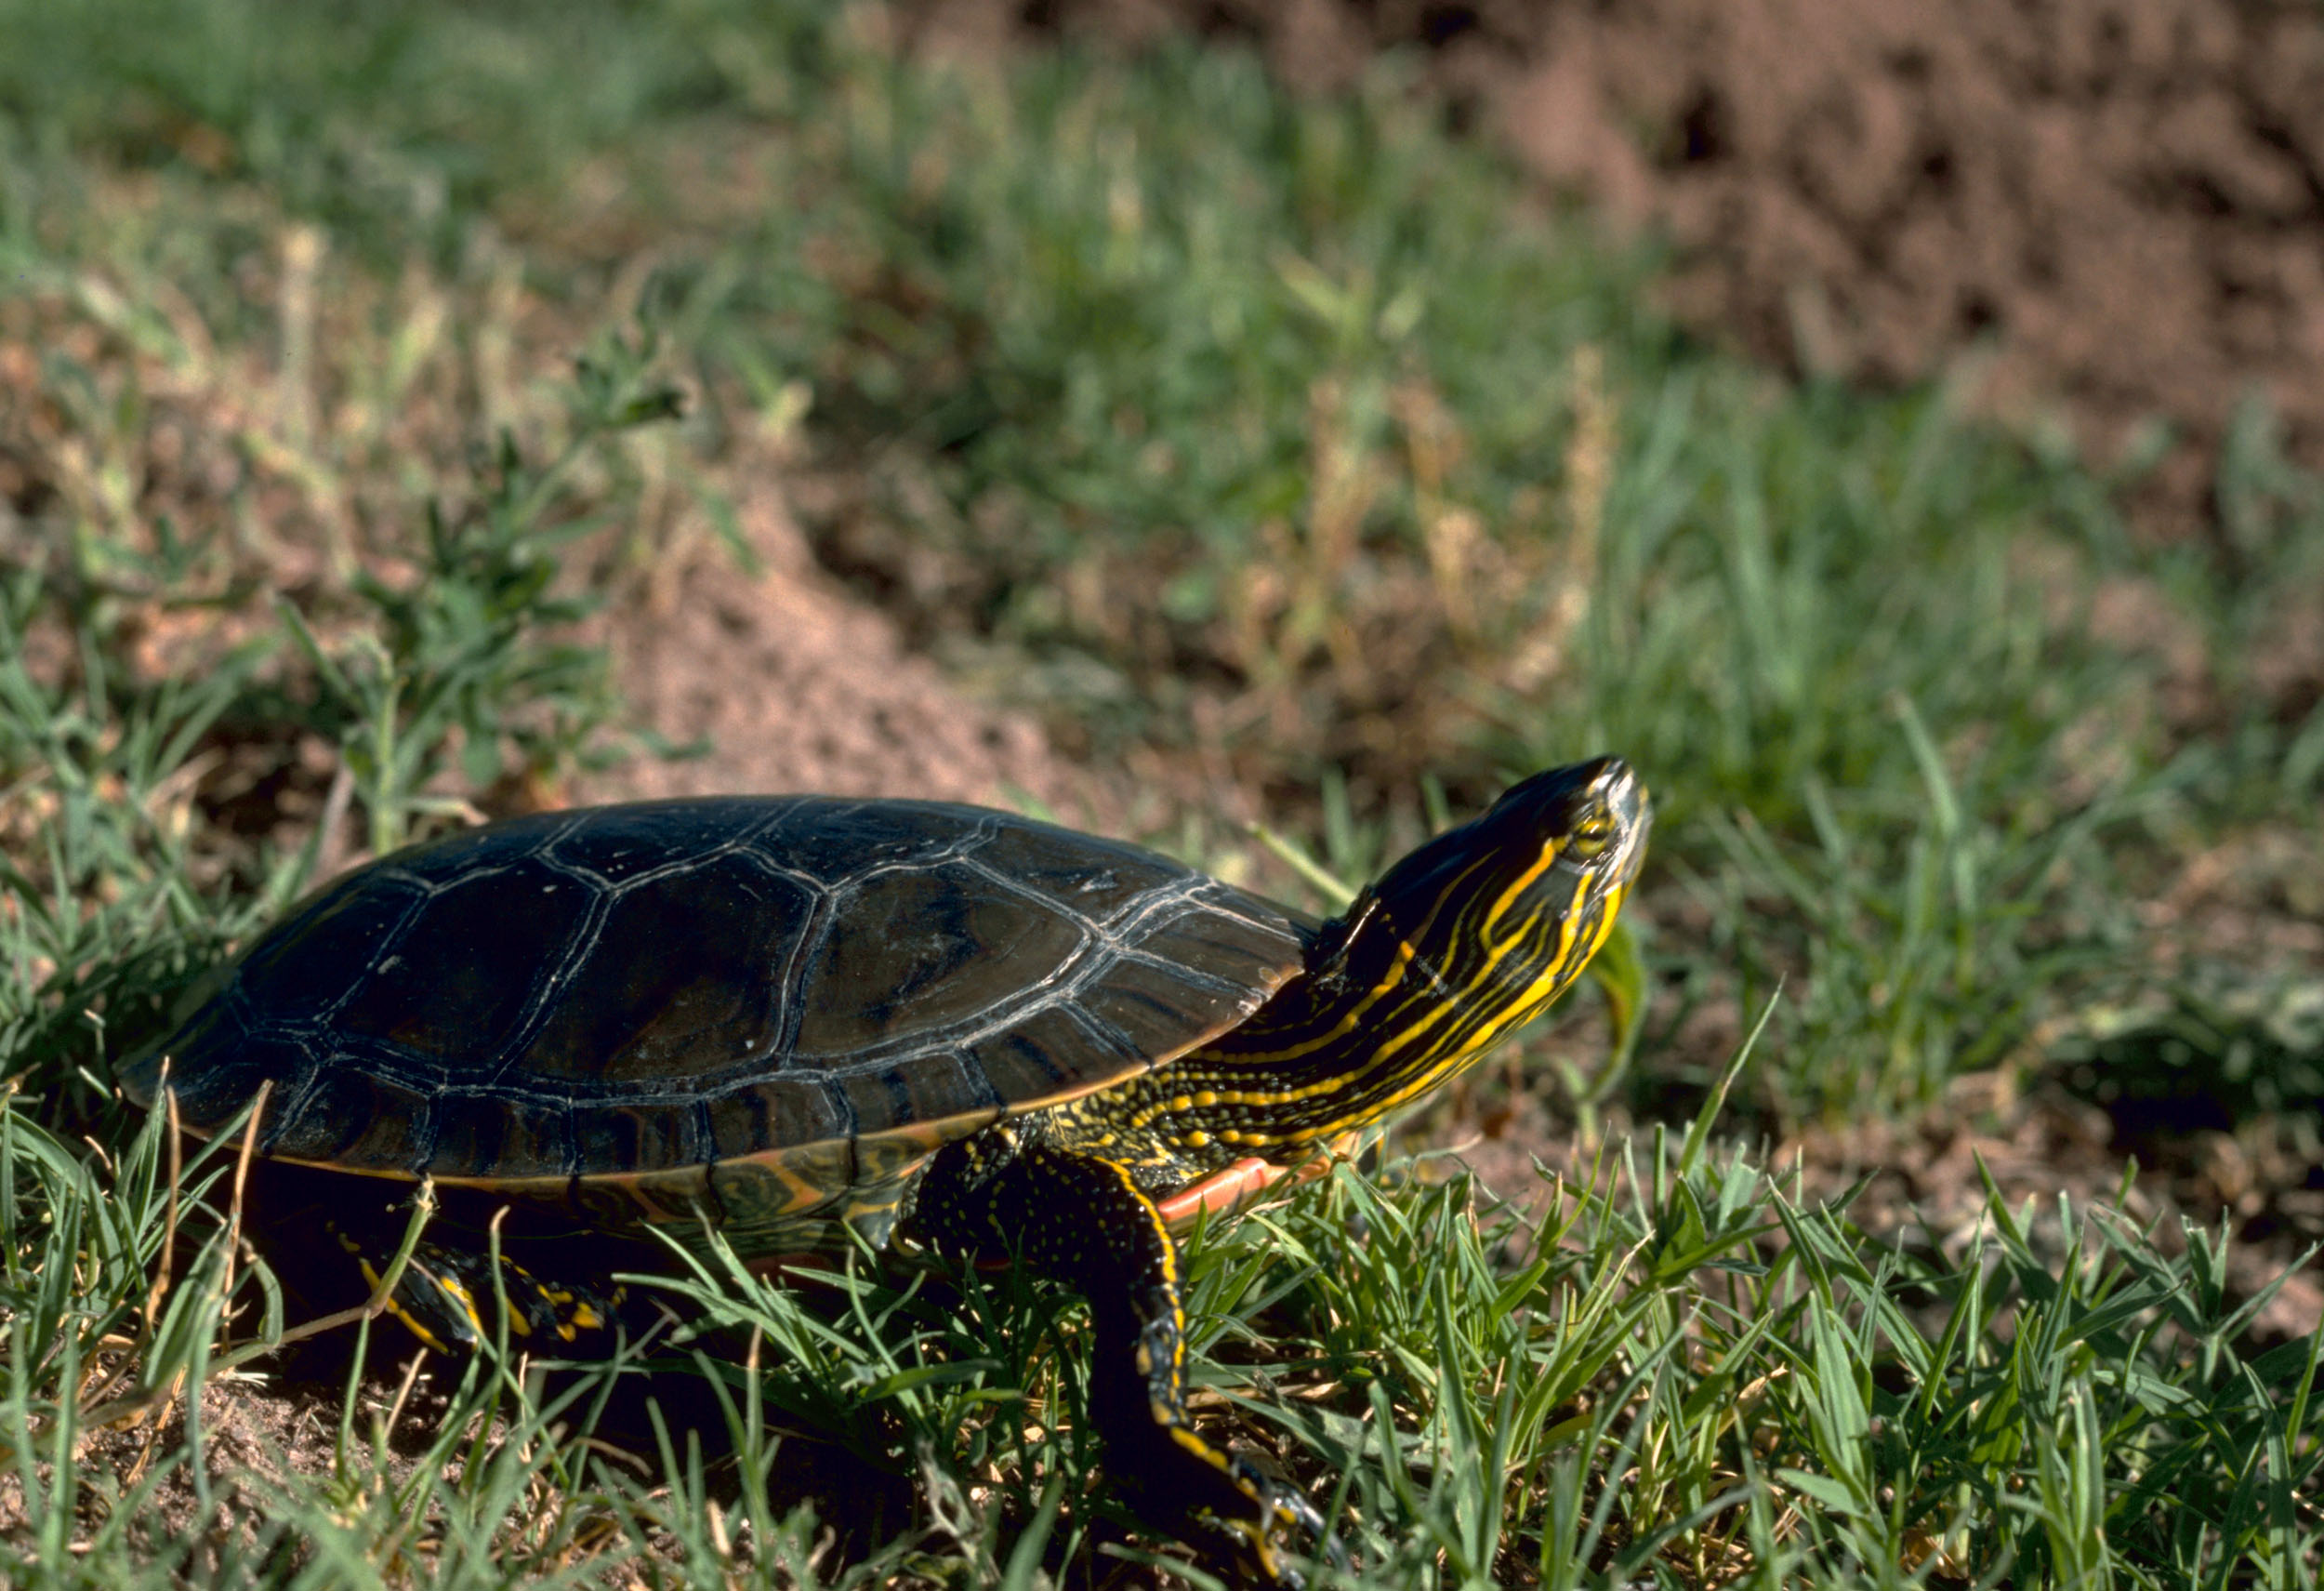 Western_Painted_Turtle.jpeg